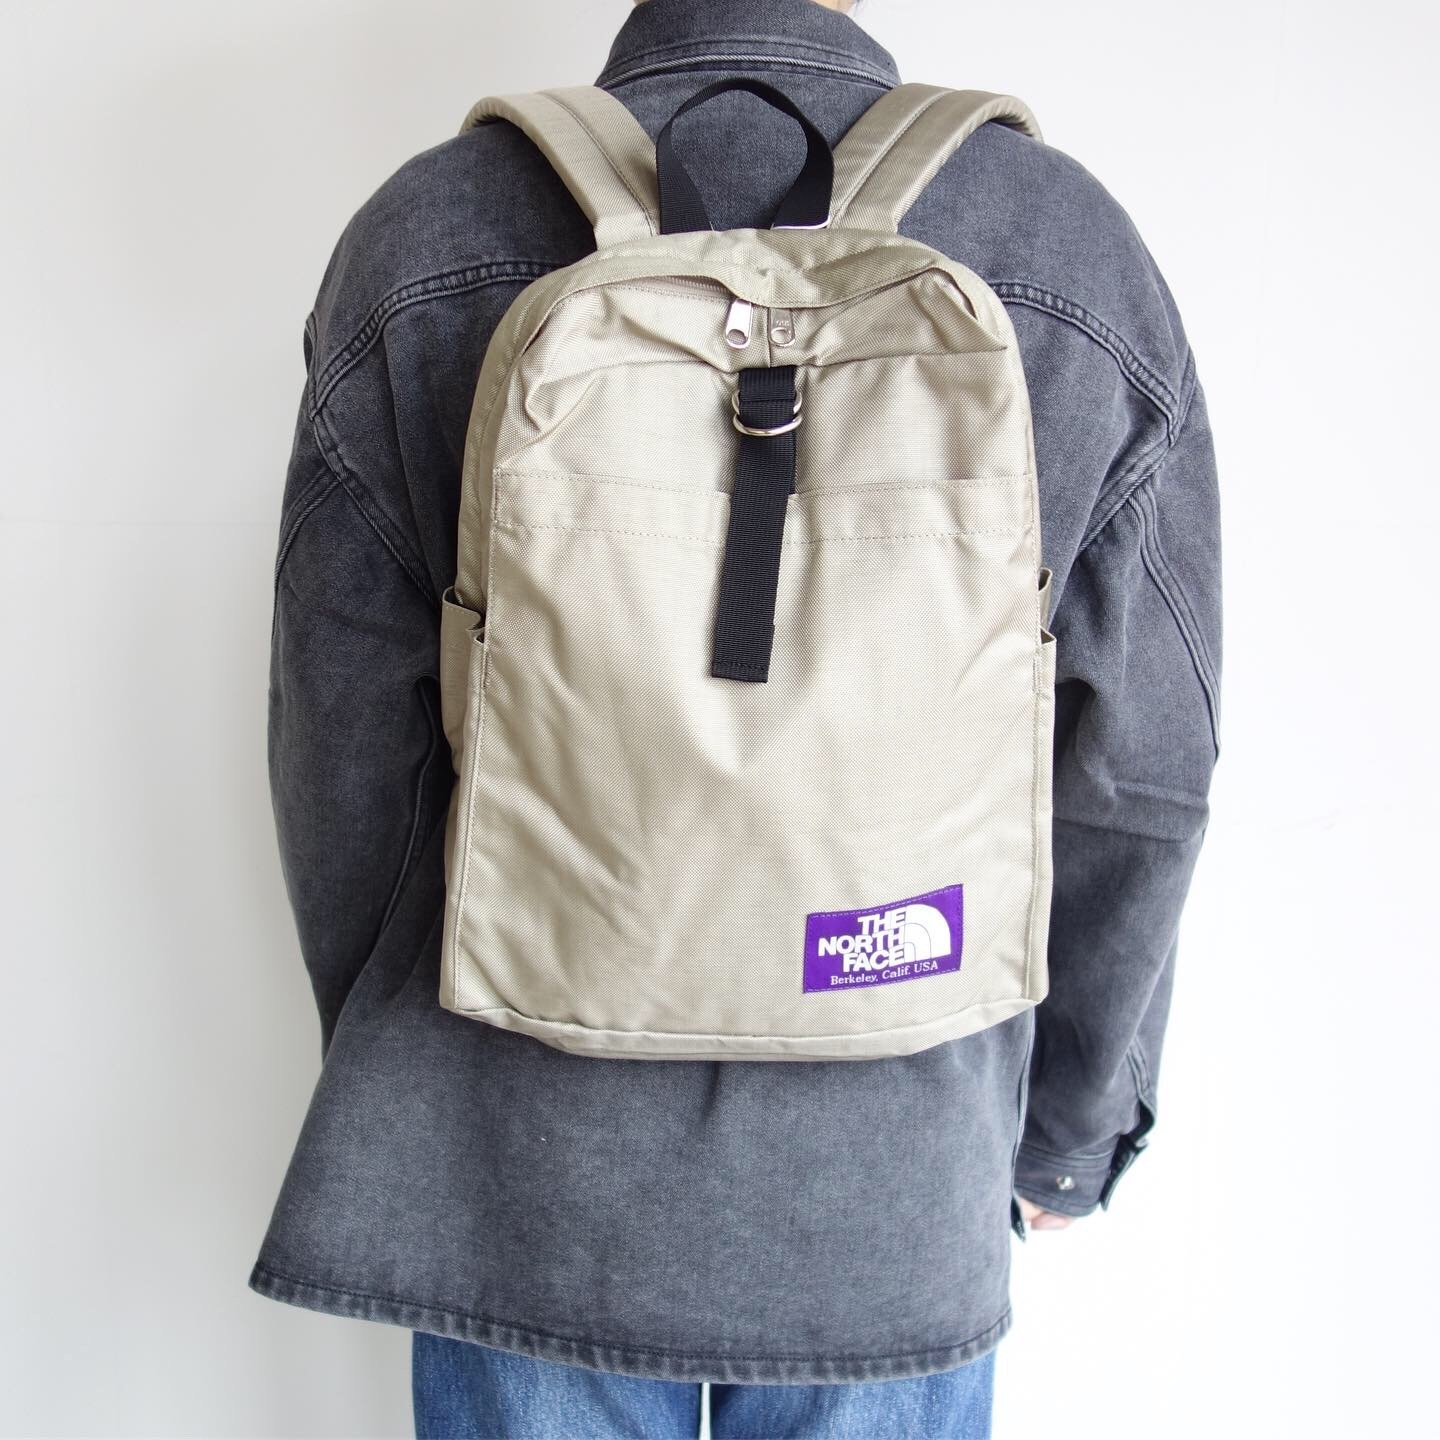 THE NORTH FACE PURPLE LABEL : Book Rac Pack M_a0234452_16105713.jpg